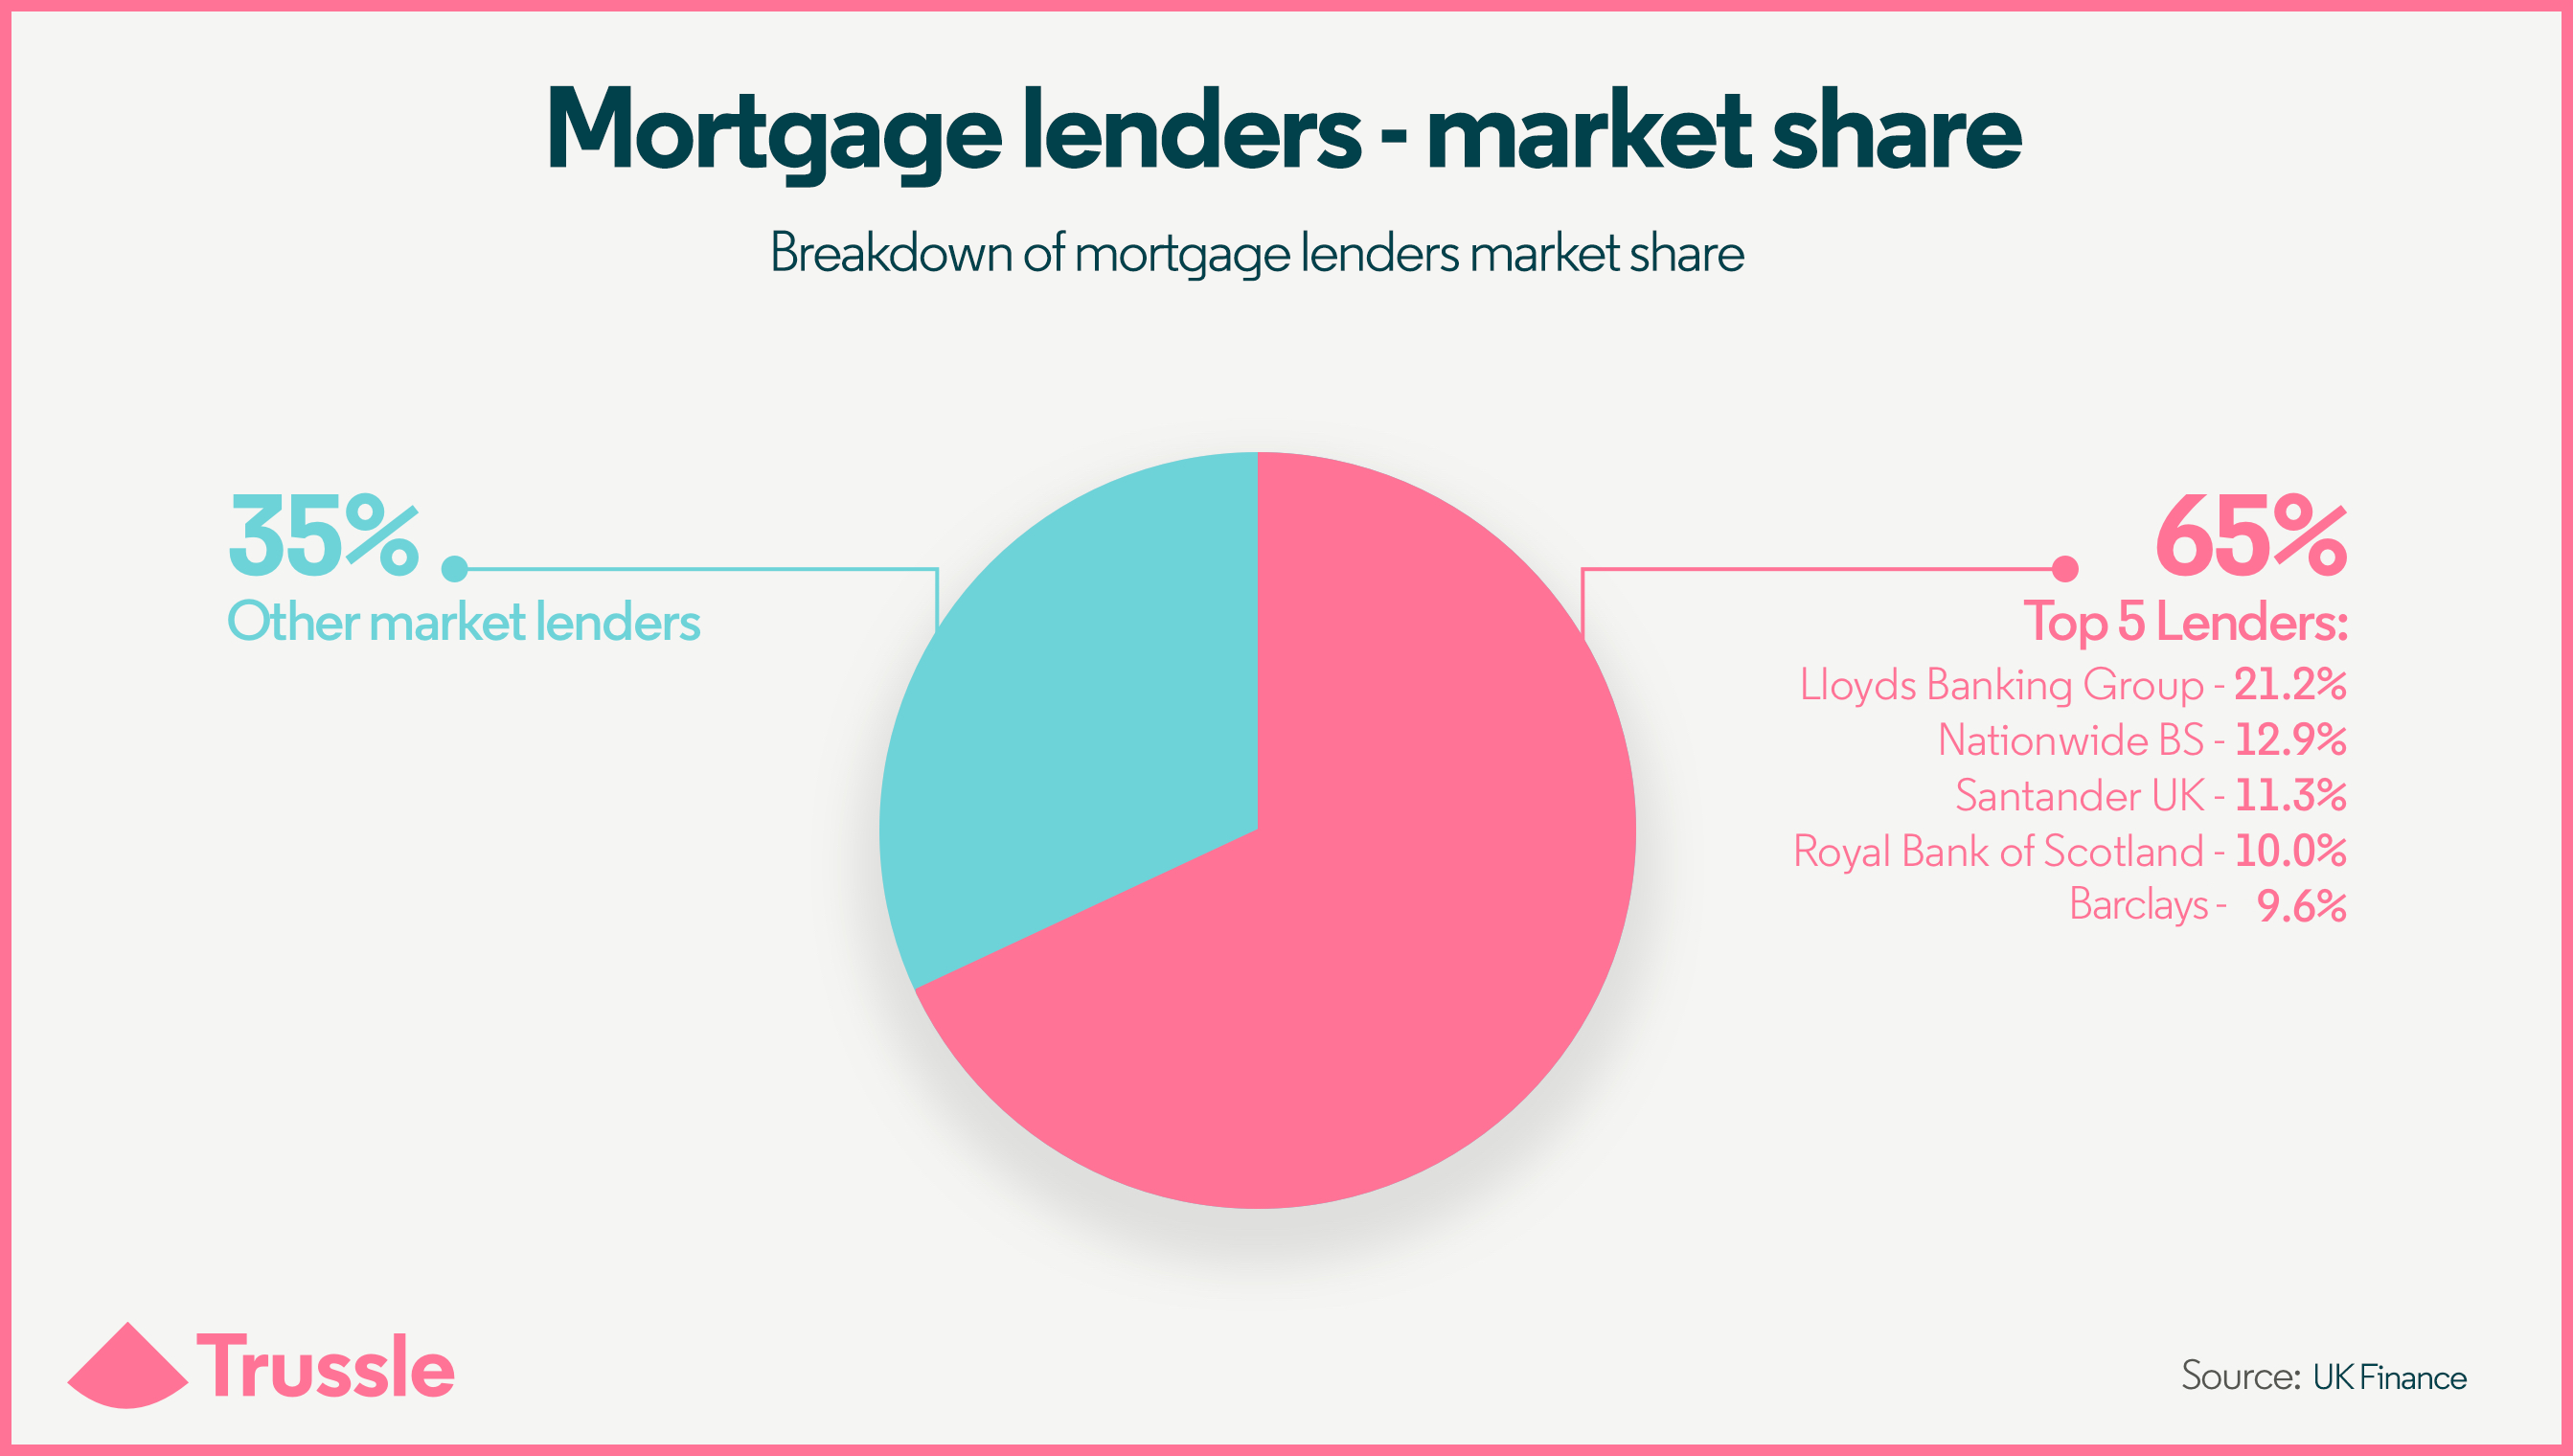 mortgage lenders market share pie chart